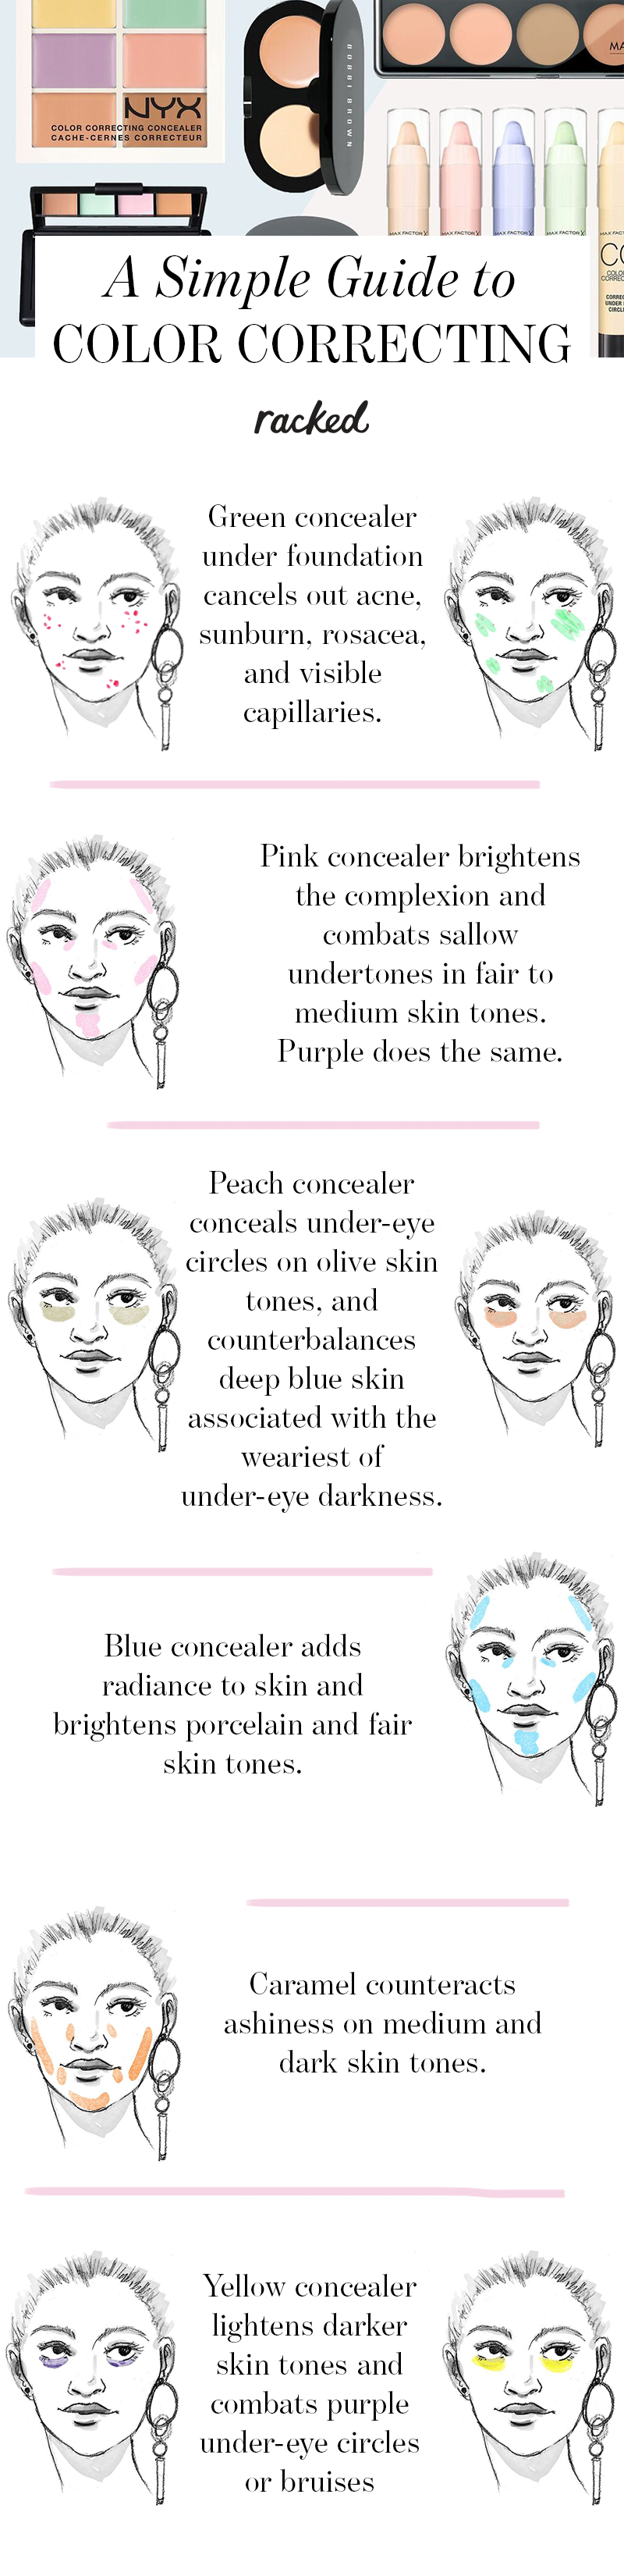 A Simple Guide to Color Correcting